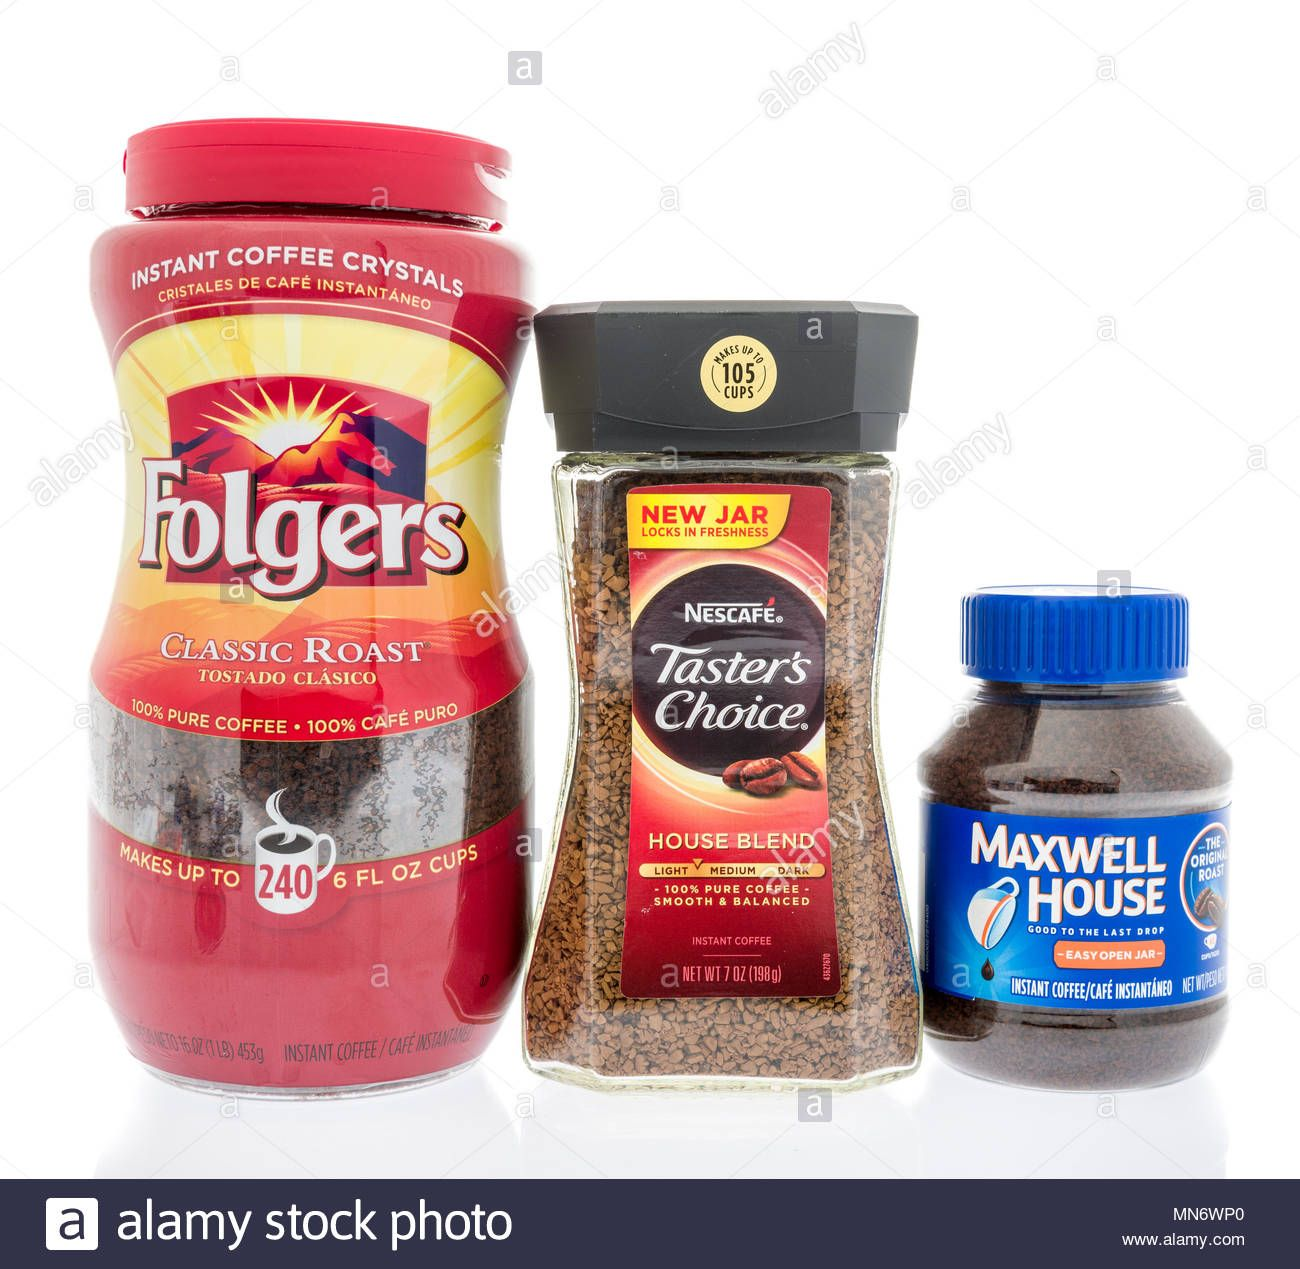 Winneconne Wi 11 May 2018 Three Of The Best Selling Instant Coffee Brands In America Is Maxwell House Coffee Branding Best Instant Coffee Instant Coffee